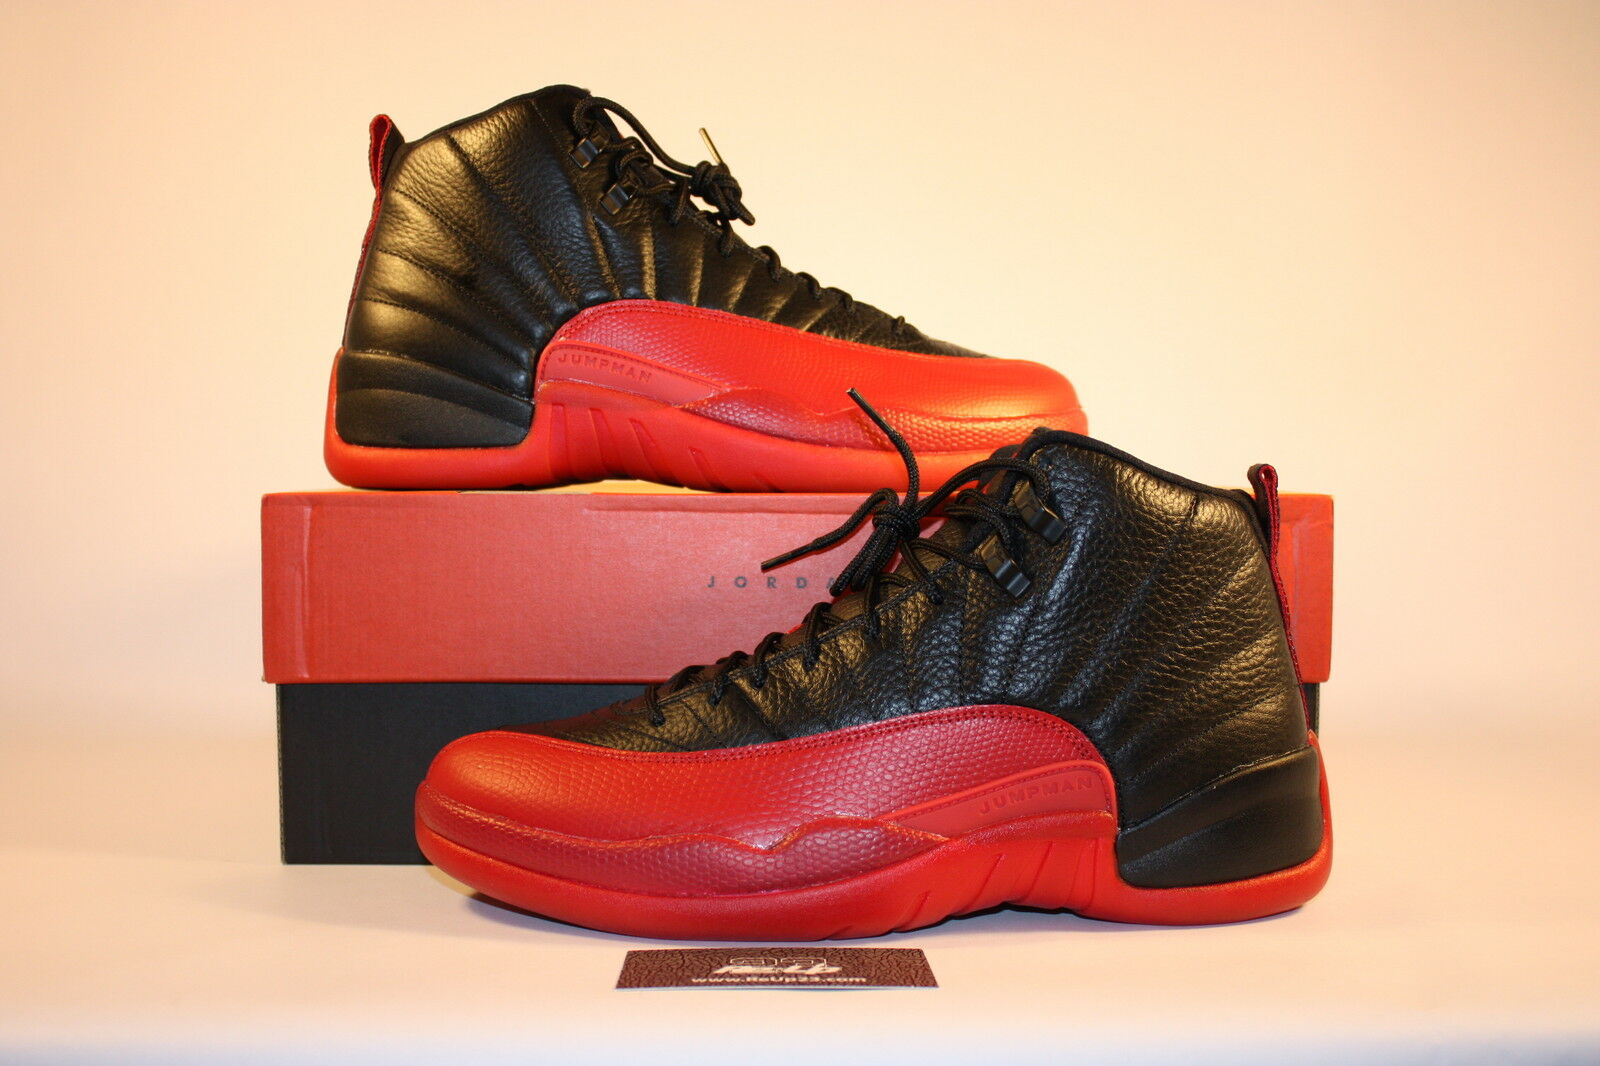 DS NIKE AIR JORDAN RETRO RETRO RETRO 12 FLU GAME BRED SZ 10.5 MASTER CHERRY OVO WINGS PSNY a3e032